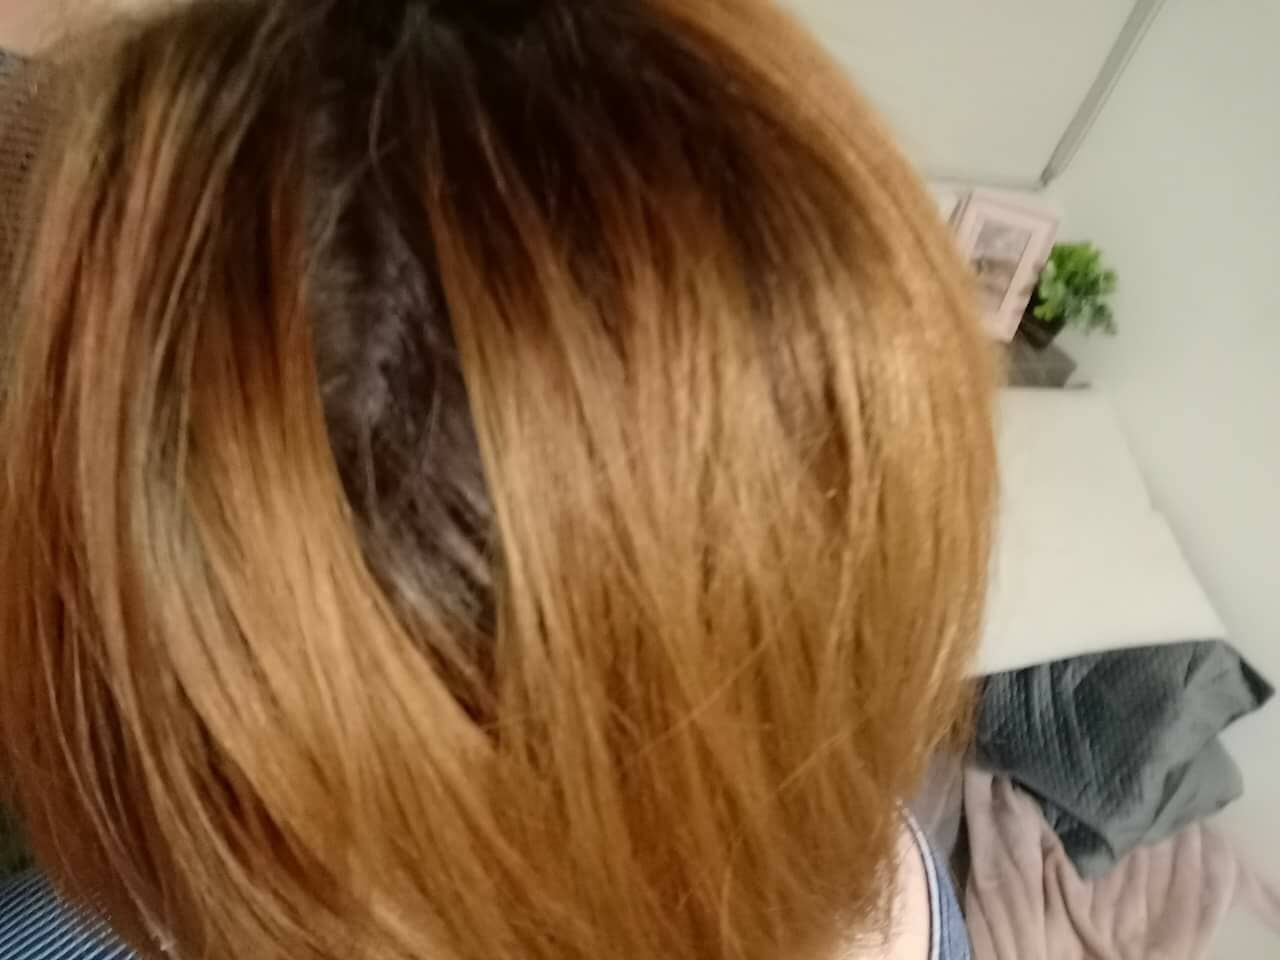 How To Stop My Hair Separating At The Crown Like This On Braided Beauty Hairstyle To Braided Hairstyles Easy Crown Hairstyles Cowlick Hairstyles